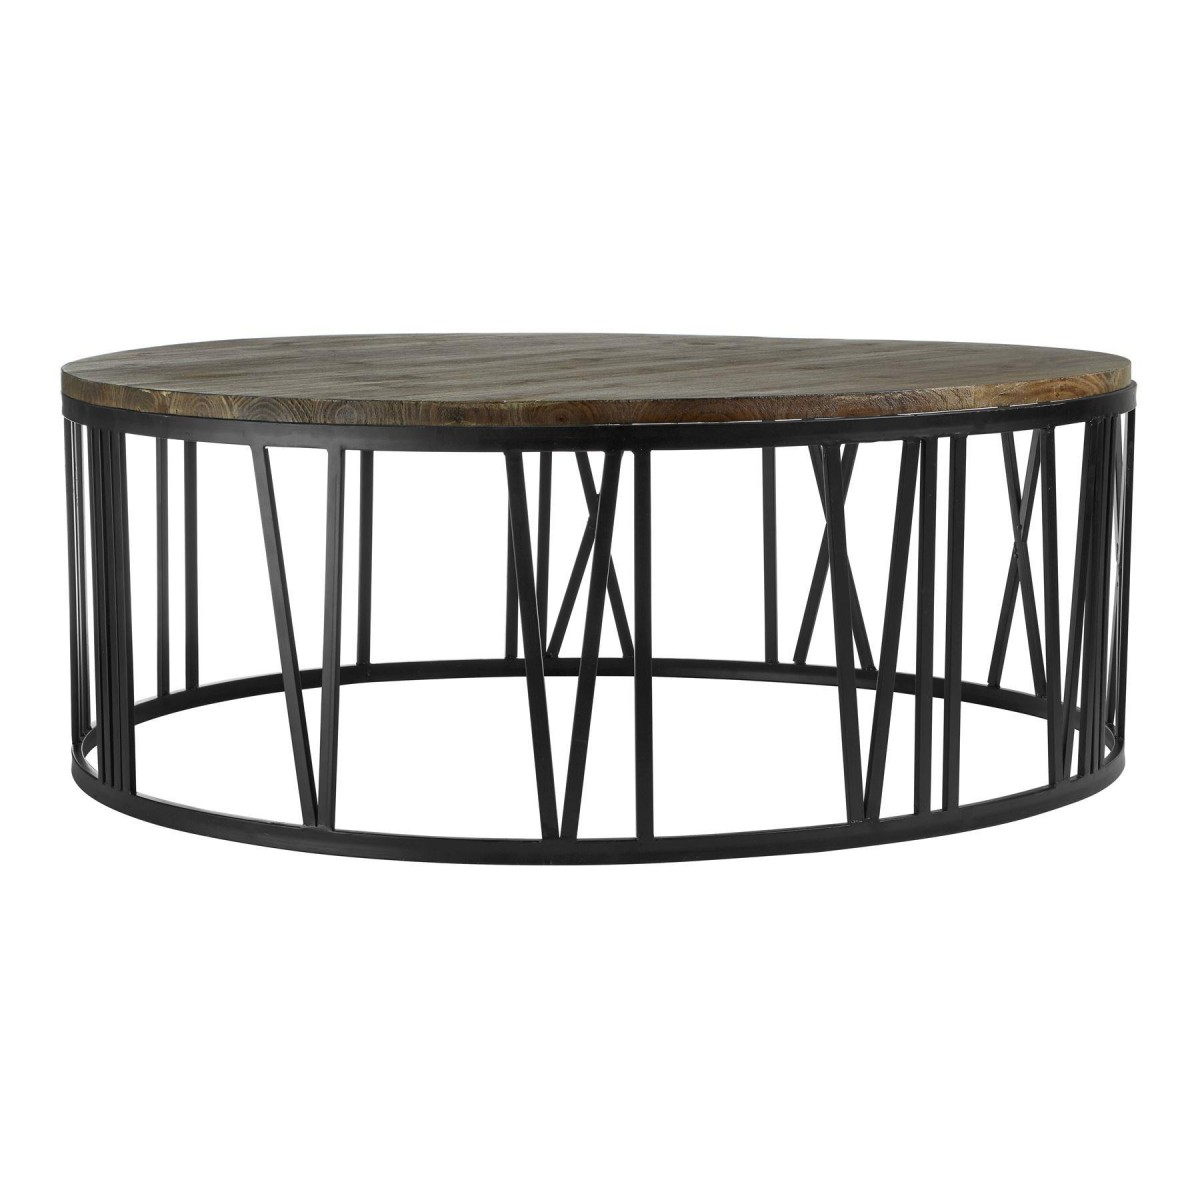 Greenwich Coffee Table Round Fir Wood Black Metal